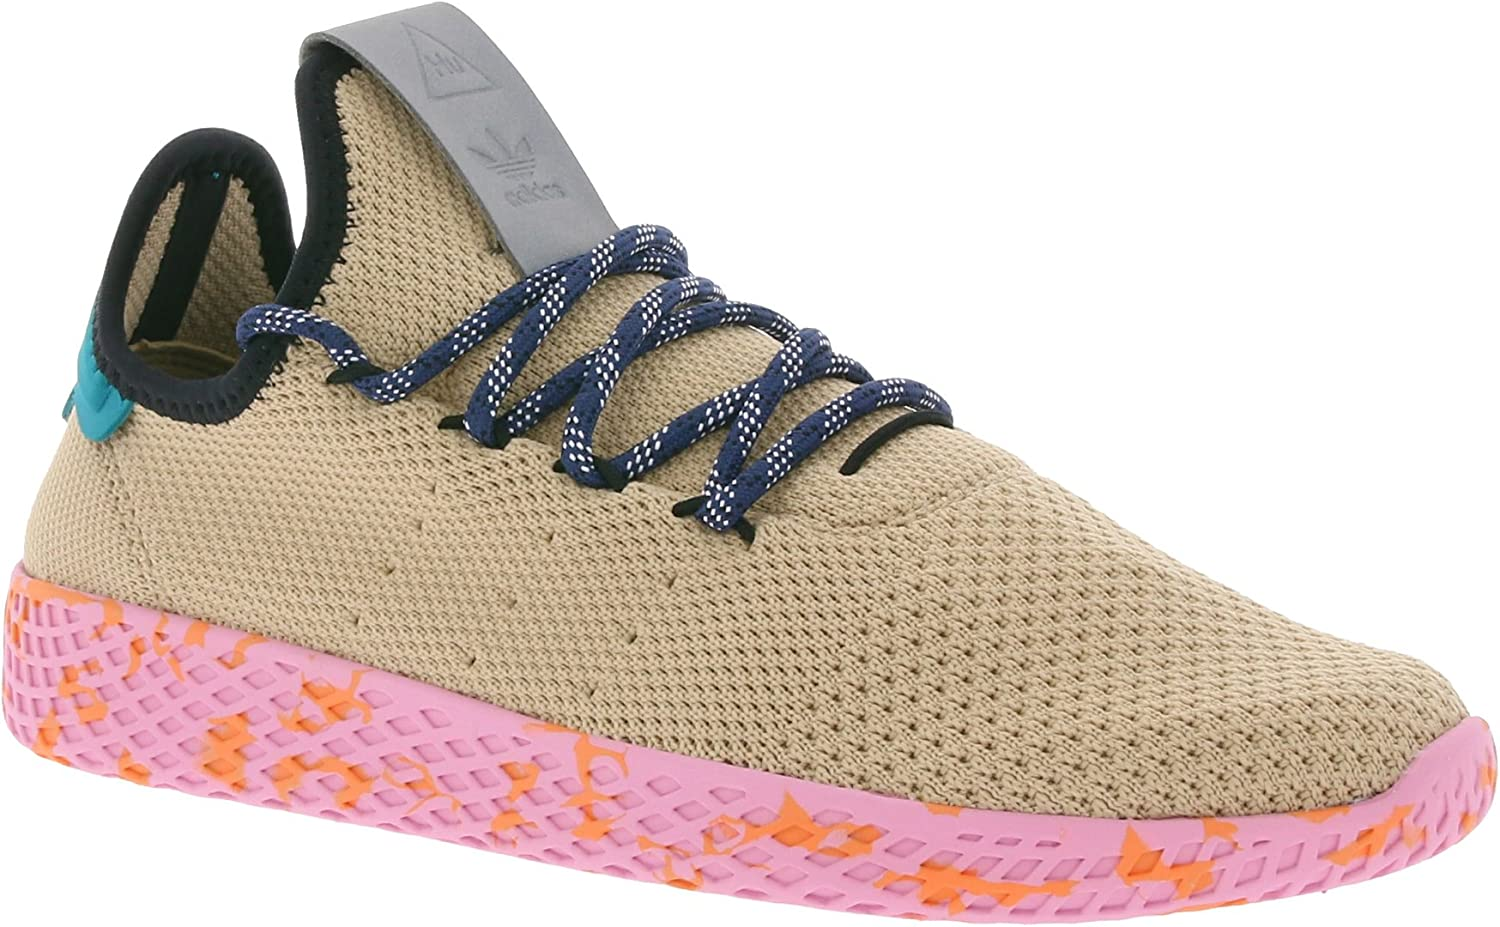 Adidas Originals Pw Tennis Hu Mens Synthetic Material Trainers Beige